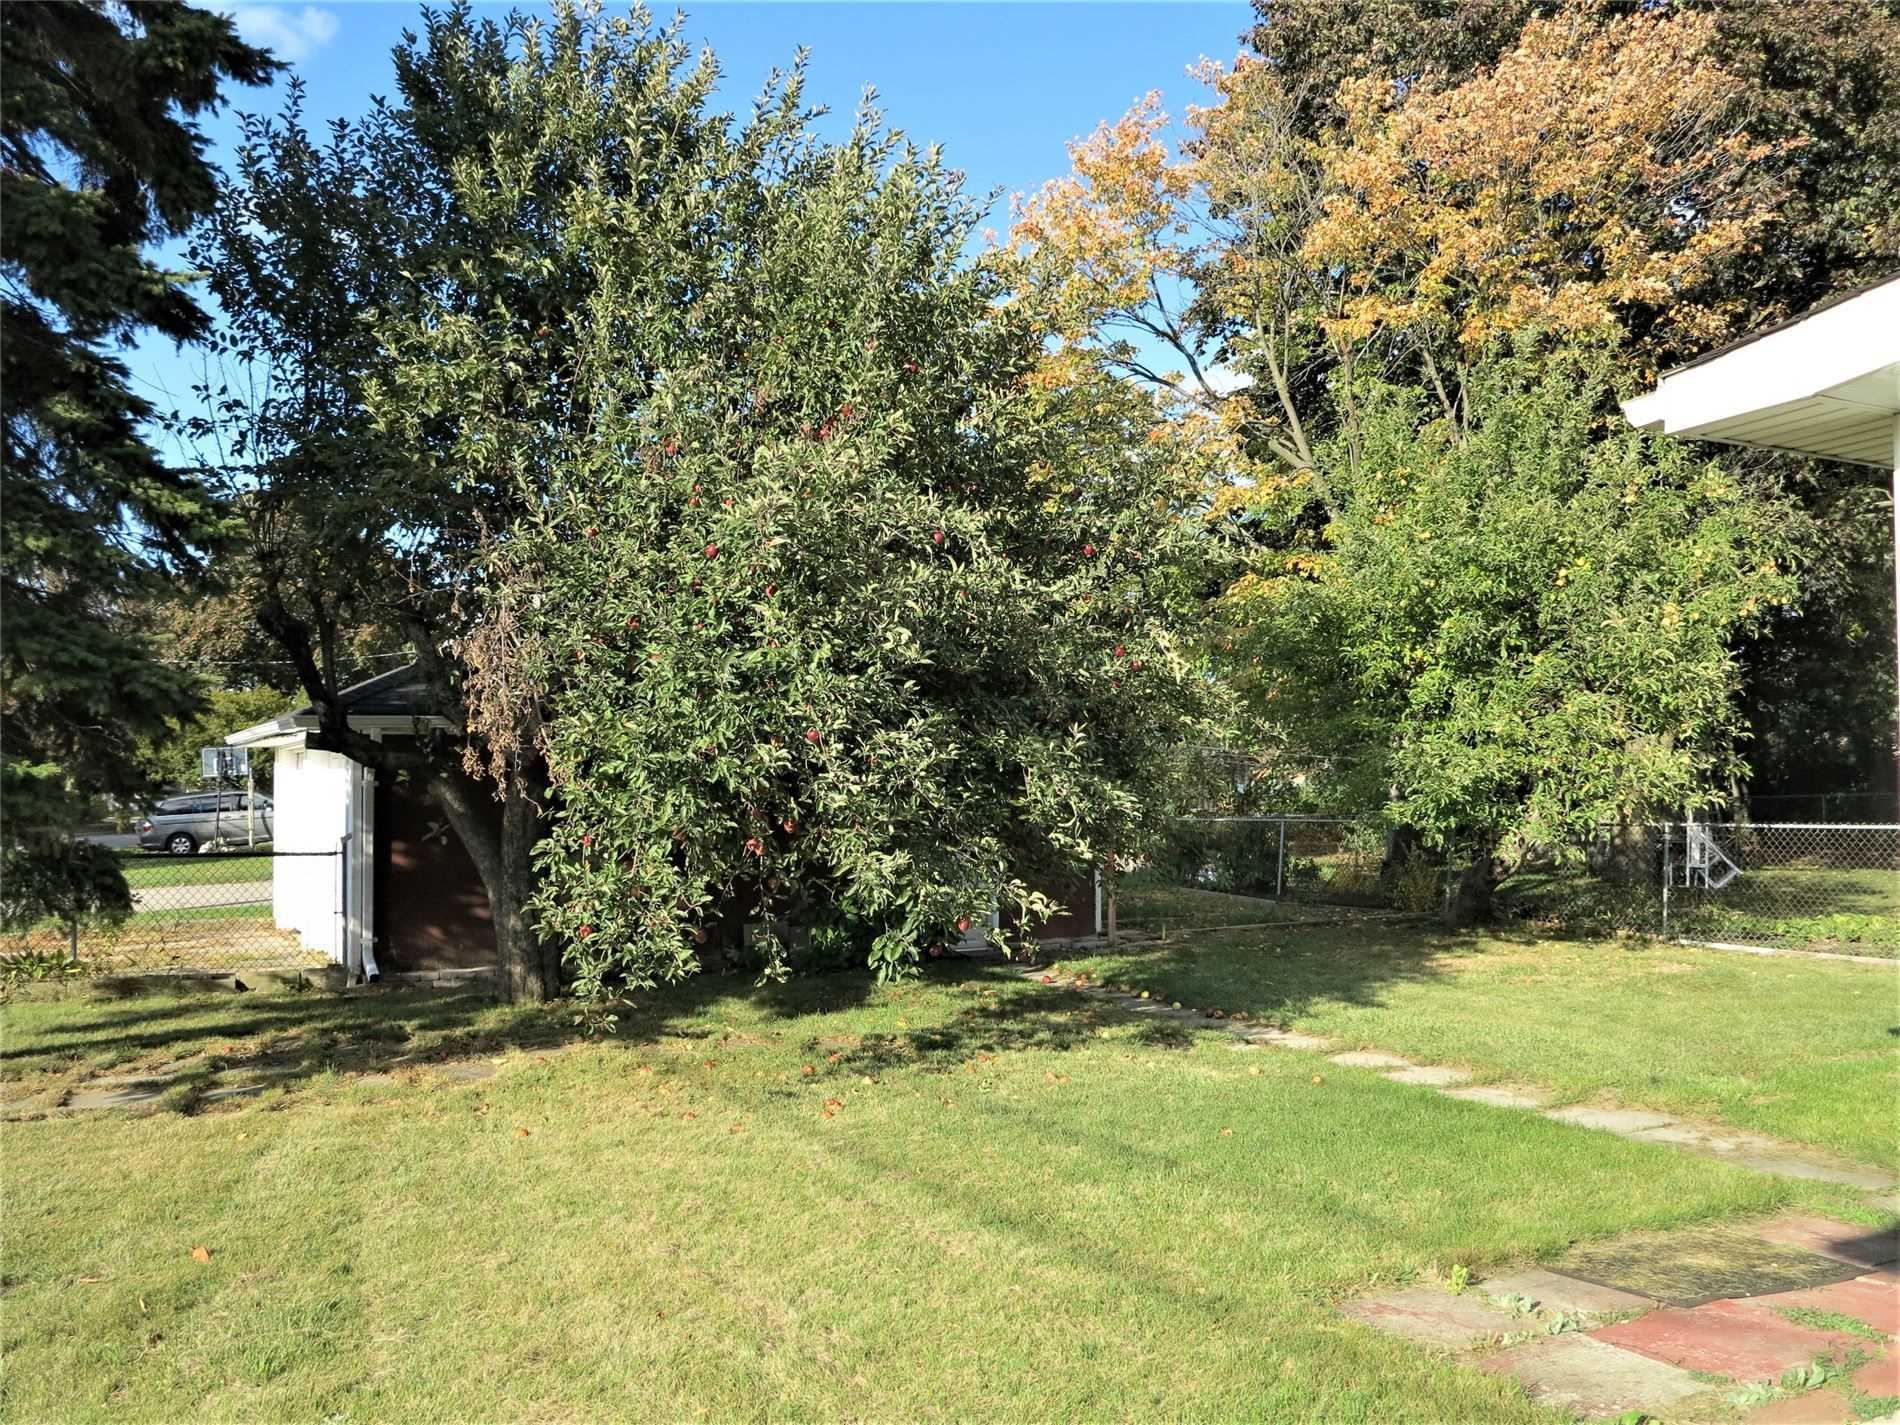 Image 9 of 30 showing inside of 3 Bedroom Detached Bungalow for Lease at 456 Drewry Ave, Toronto M2R2K7